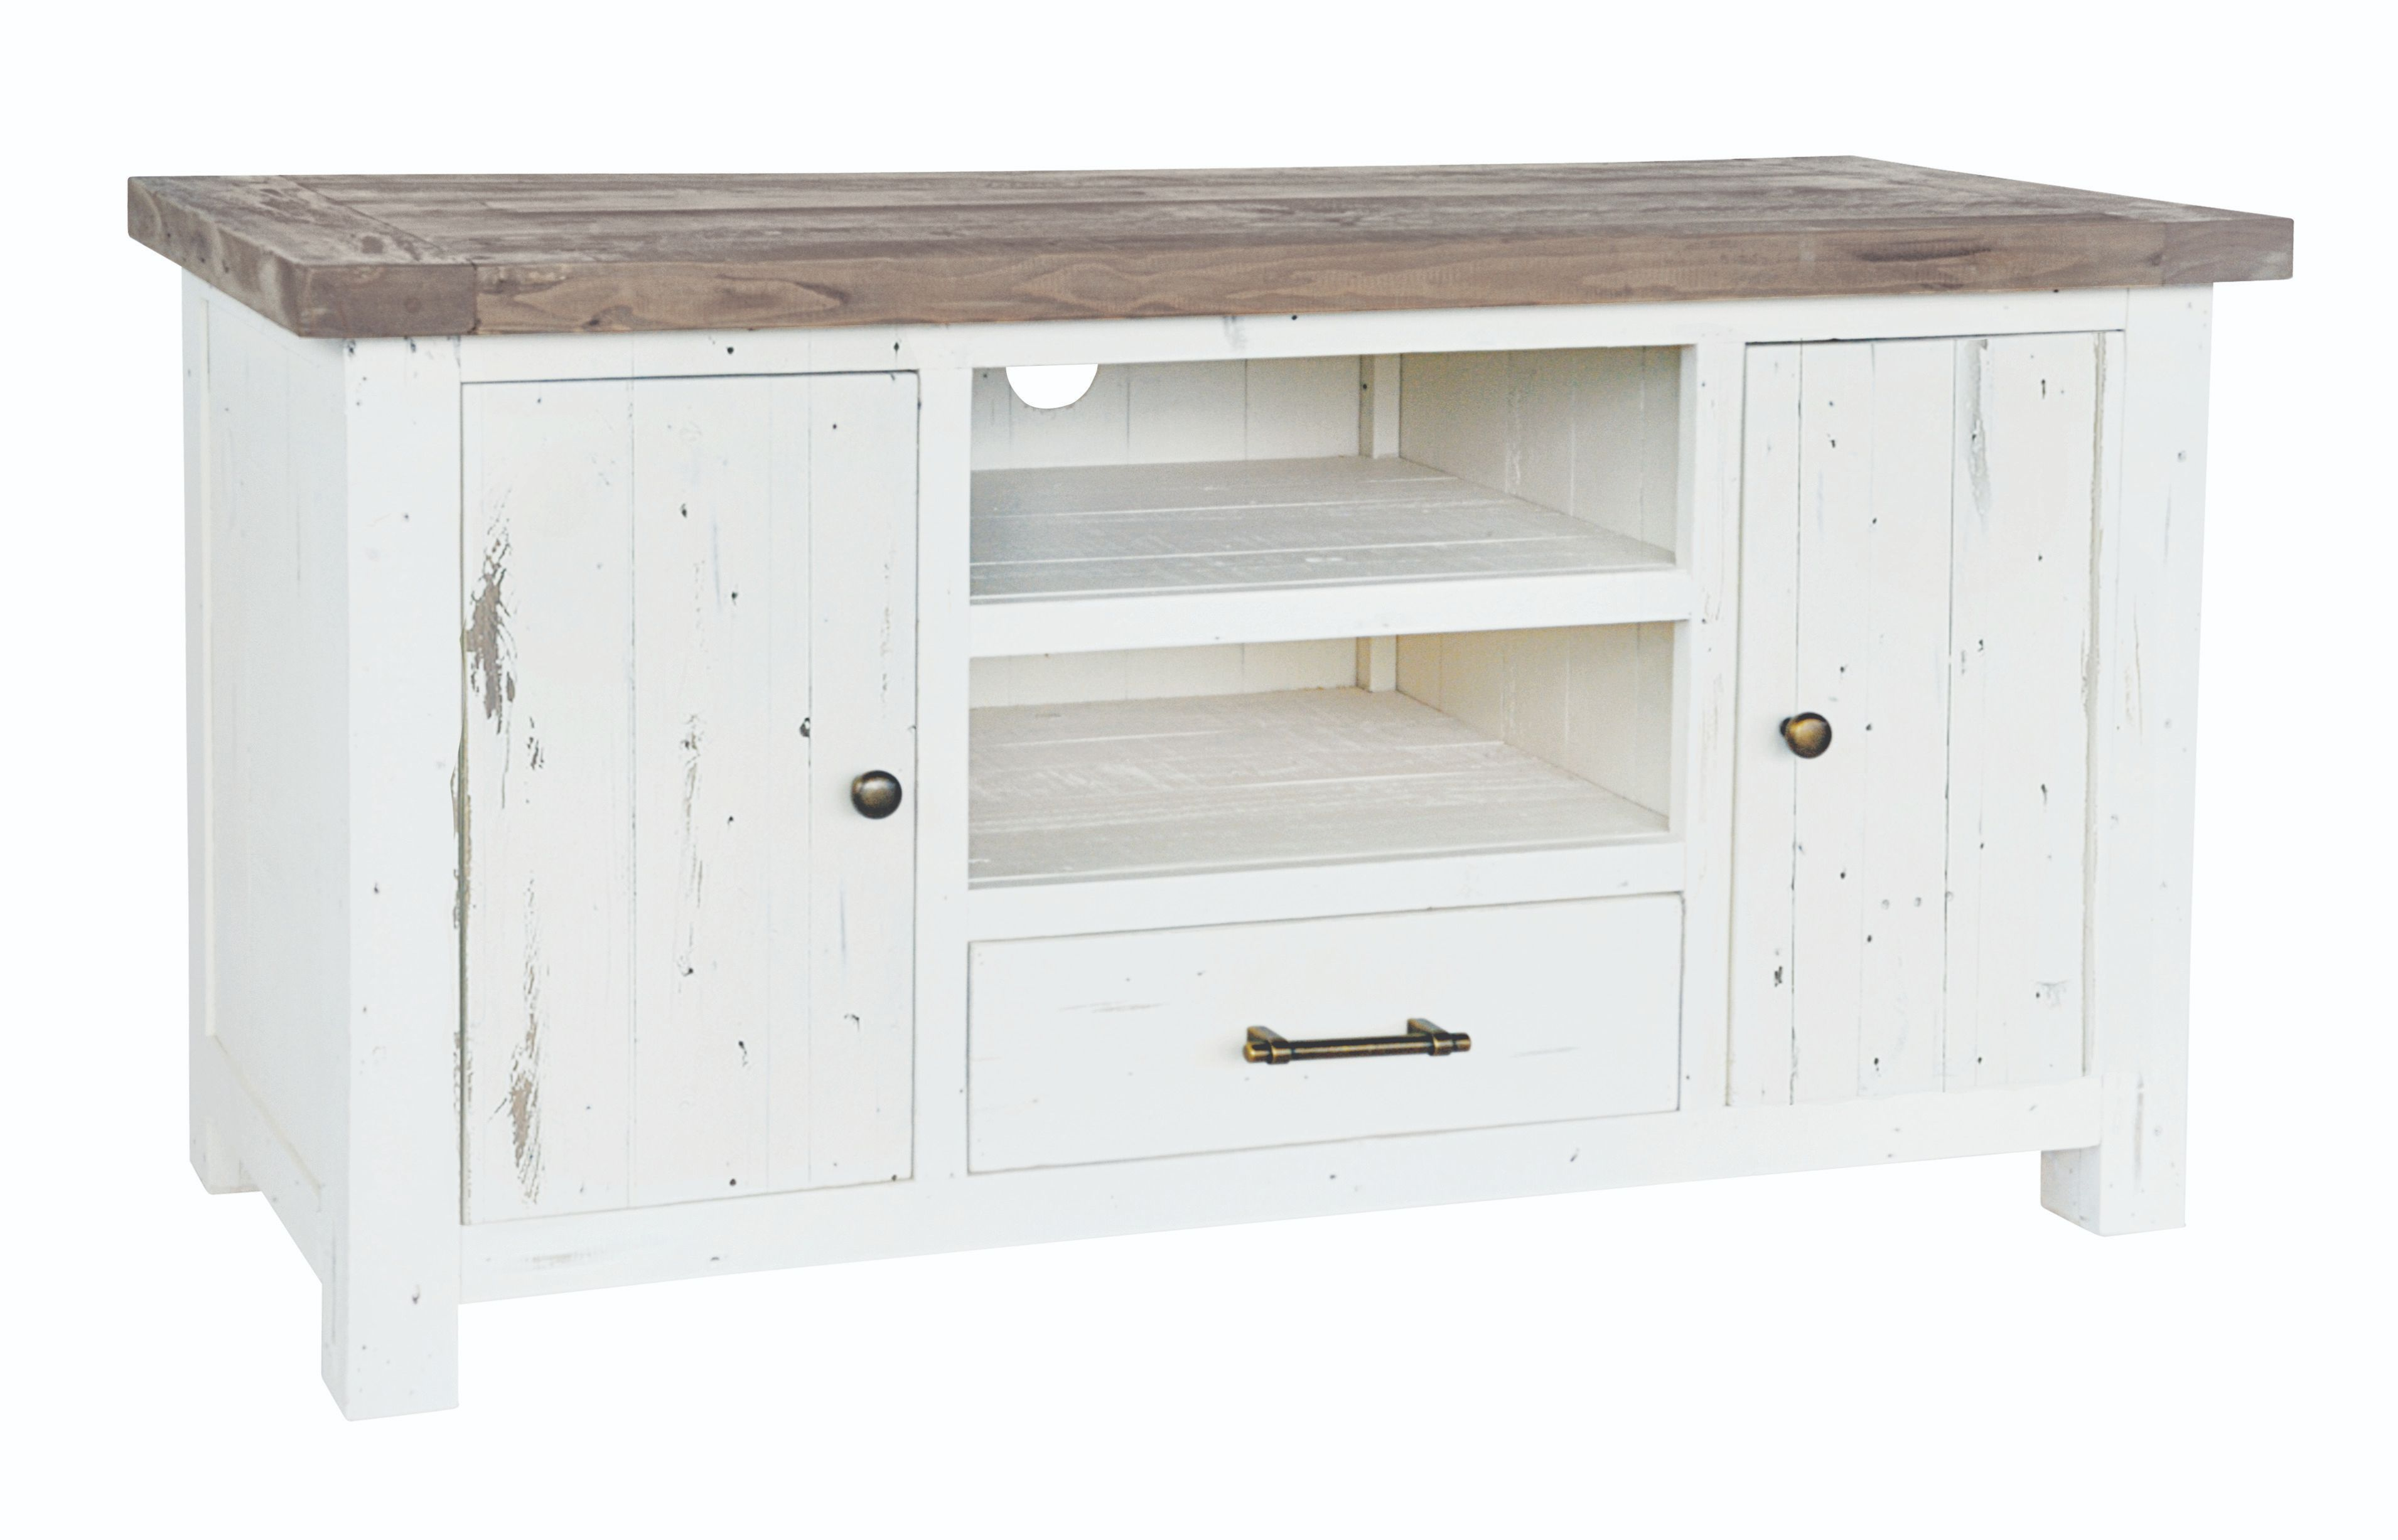 PURBECK TV UNIT Distressed Paint & Driftwood